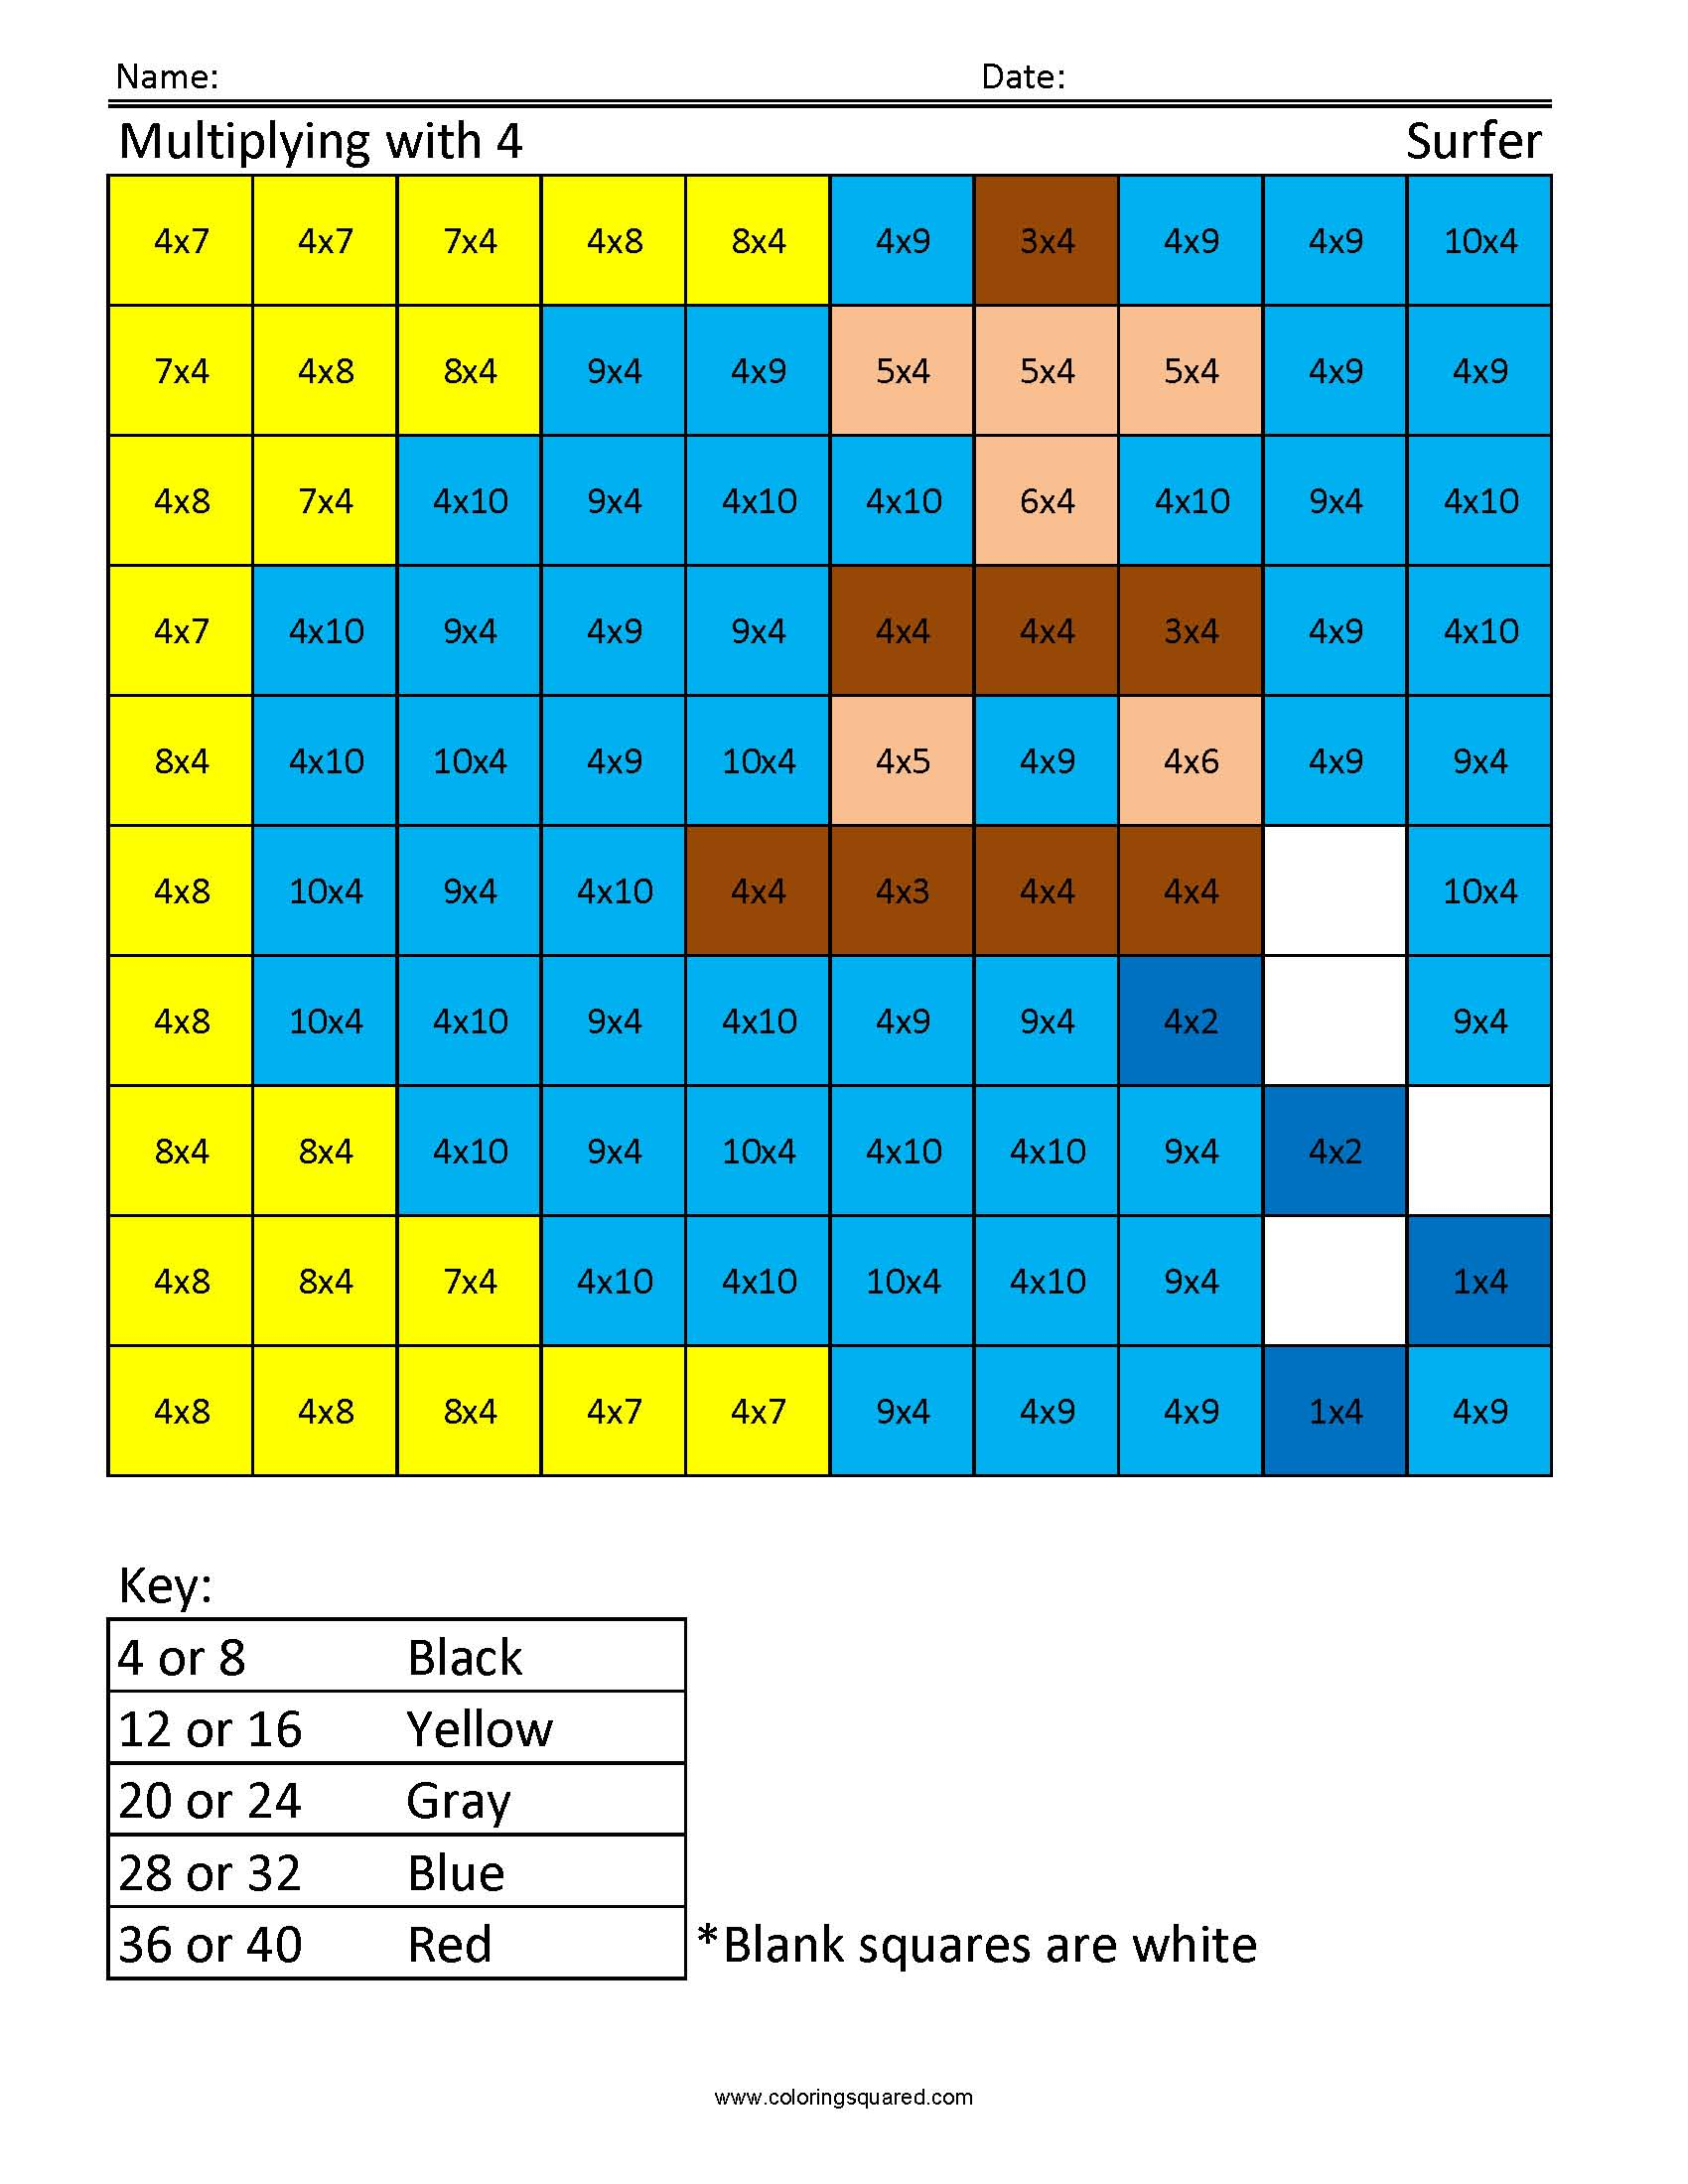 Jm4 Surfer Free Multiplication Times Table Practice